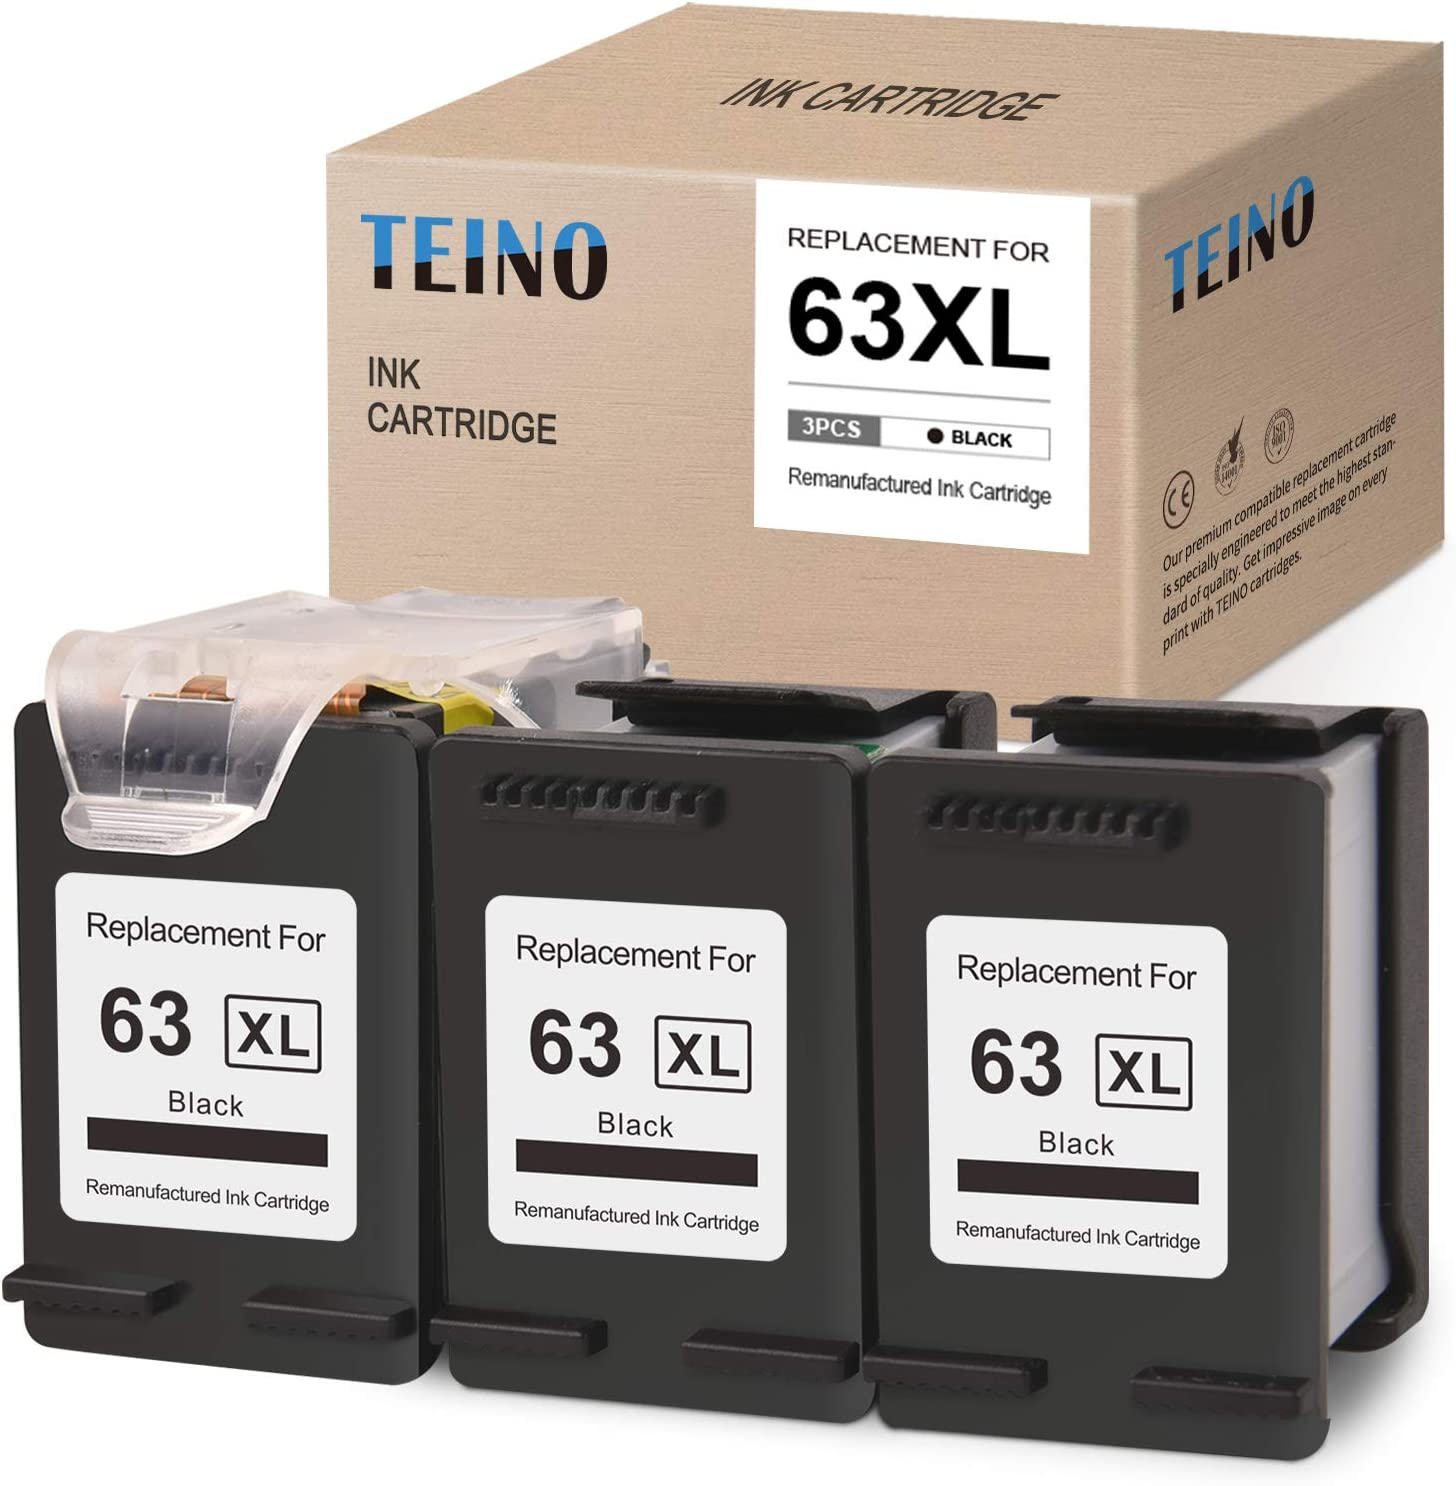 TEINO Remanufactured Ink Cartridges Replacement for HP 63 63XL 63 XL for HP OfficeJet 3830 4650 5255 5258 4655 5252 4652 5200 DeskJet 1112 1110 2130 2132 3632 3630 3631 3634 (Black, 3 Pack)